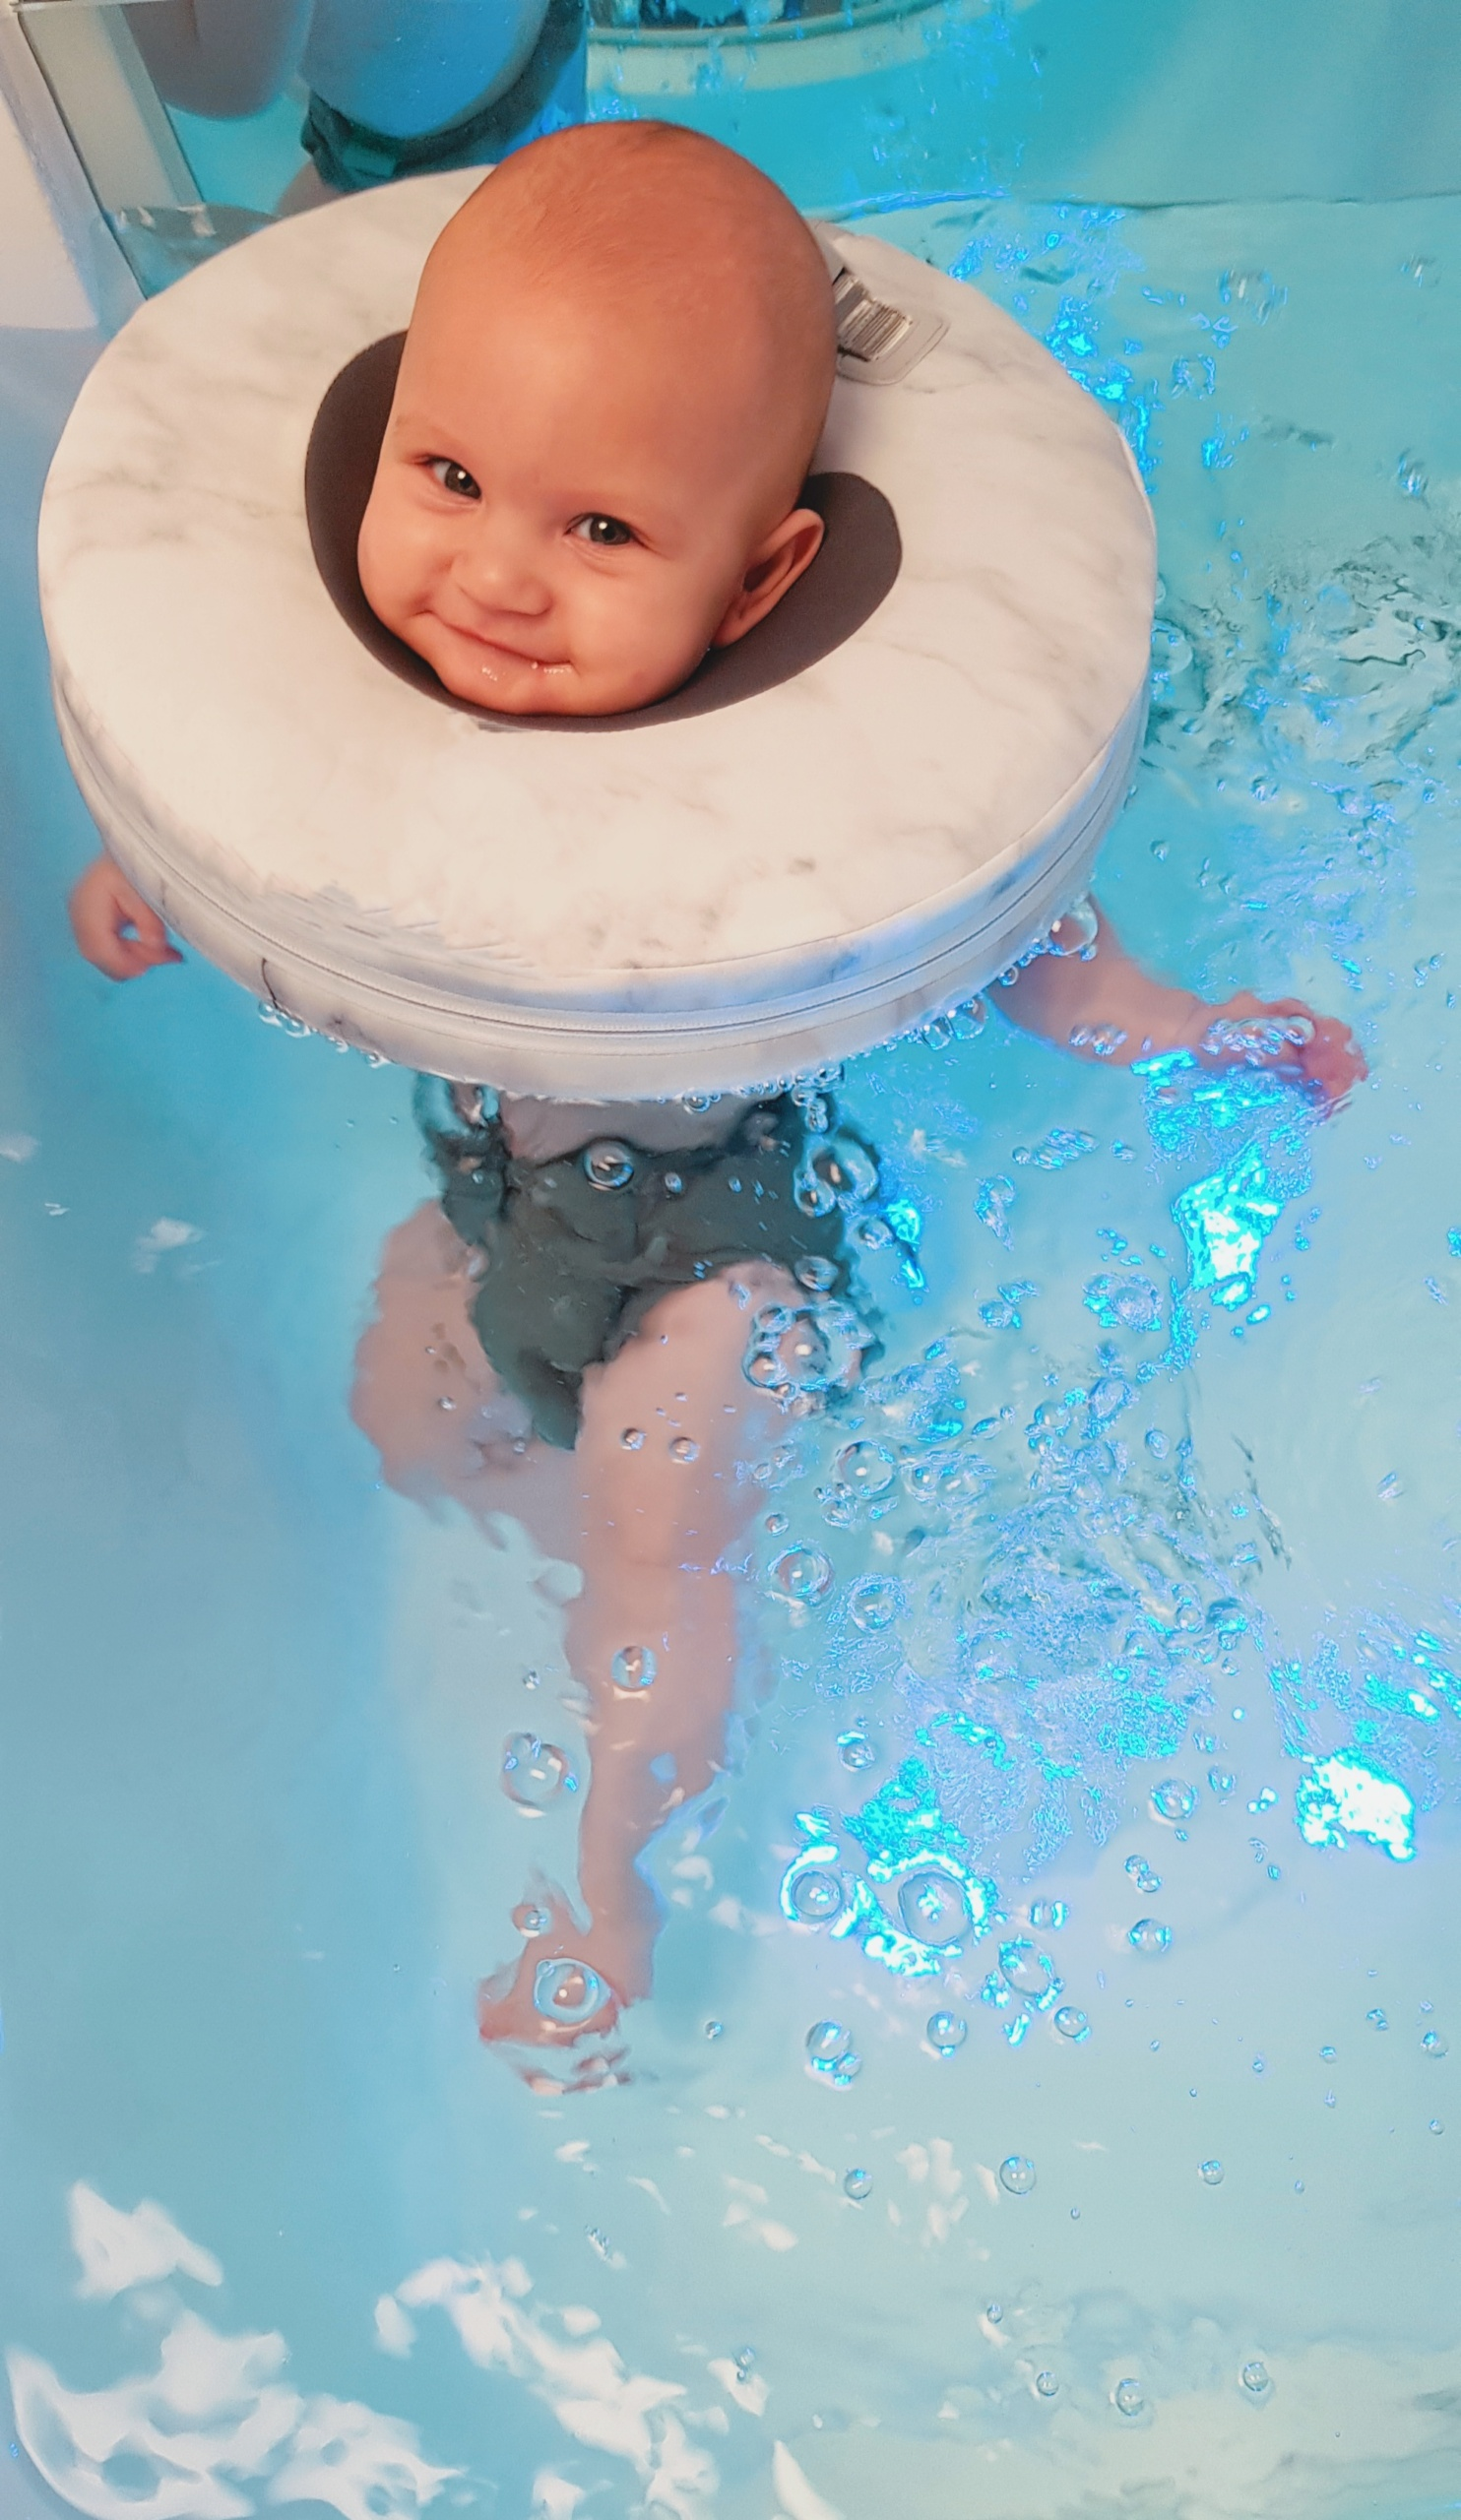 Baby in spa